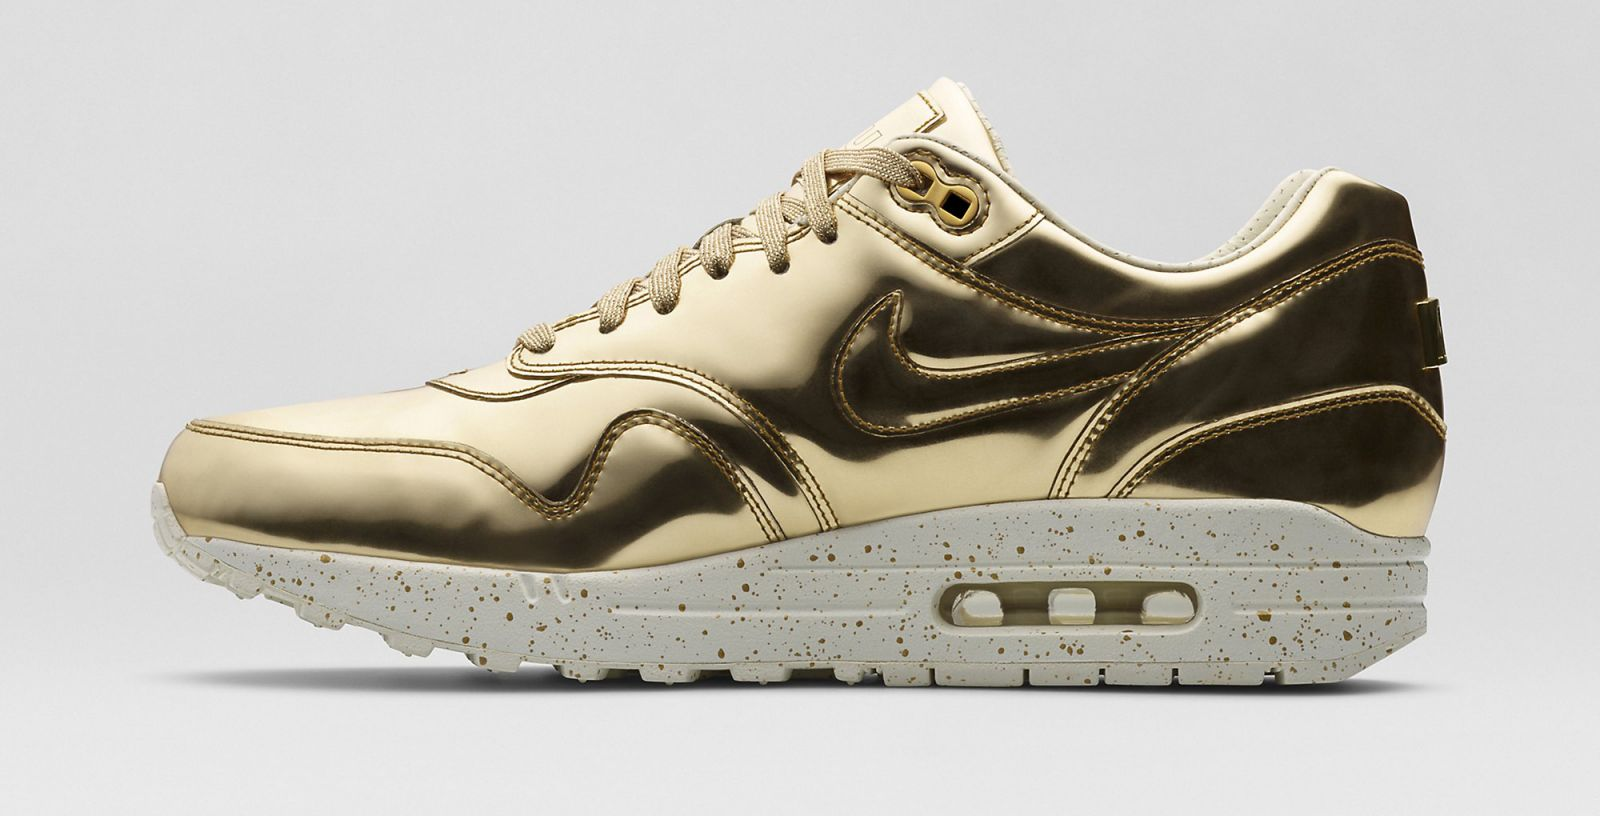 detailed look 483e5 5d89e ... promo code nike air max 1 sp liquid gold color metallc gold sail  metallic gold style closeout 616170 700 ...